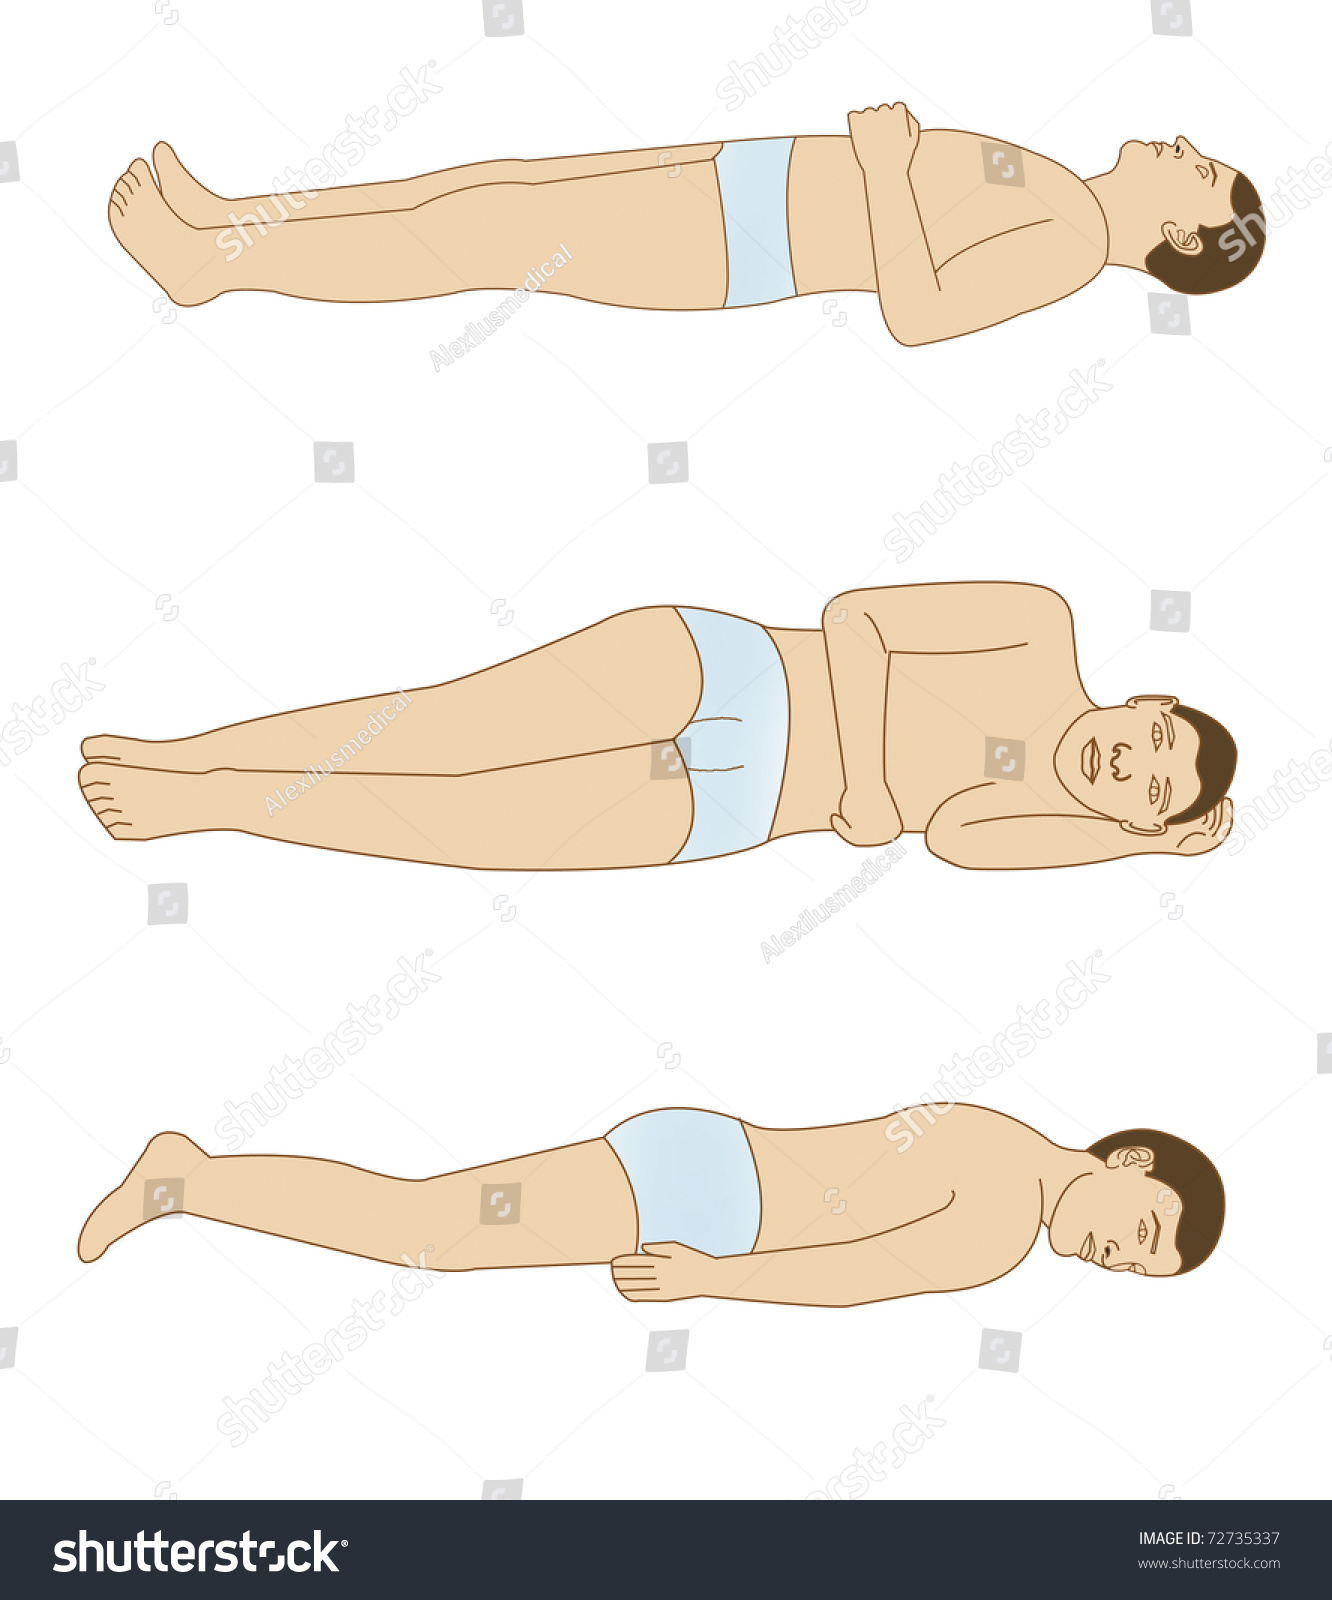 hight resolution of schematic drawing of the positions of the body for a good rest